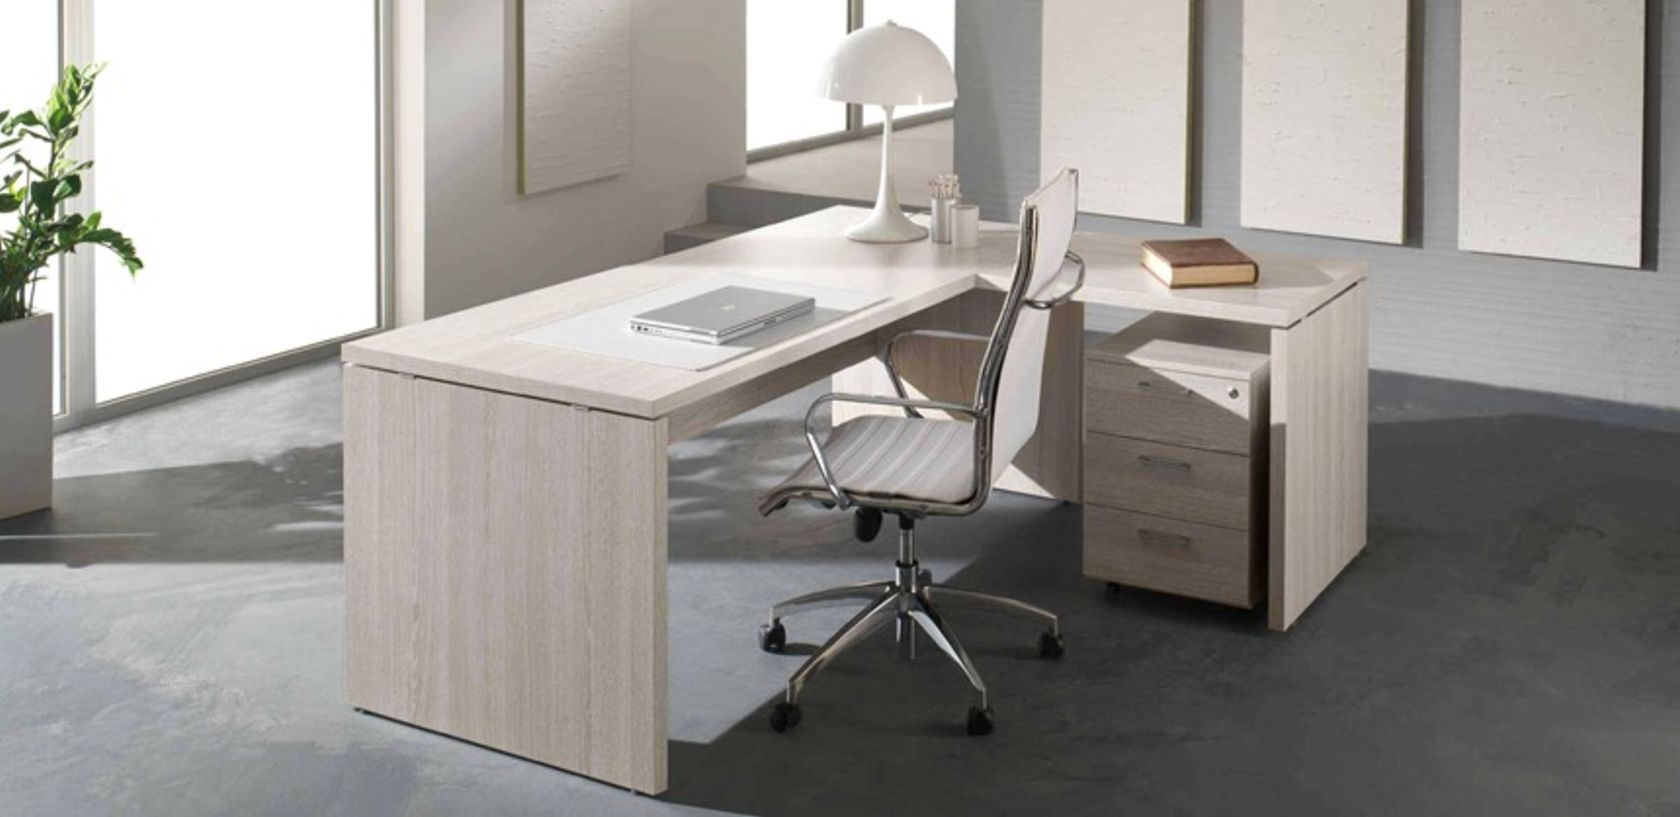 Arredo Ufficio - Design D\'Elite Office Store s.r.l.